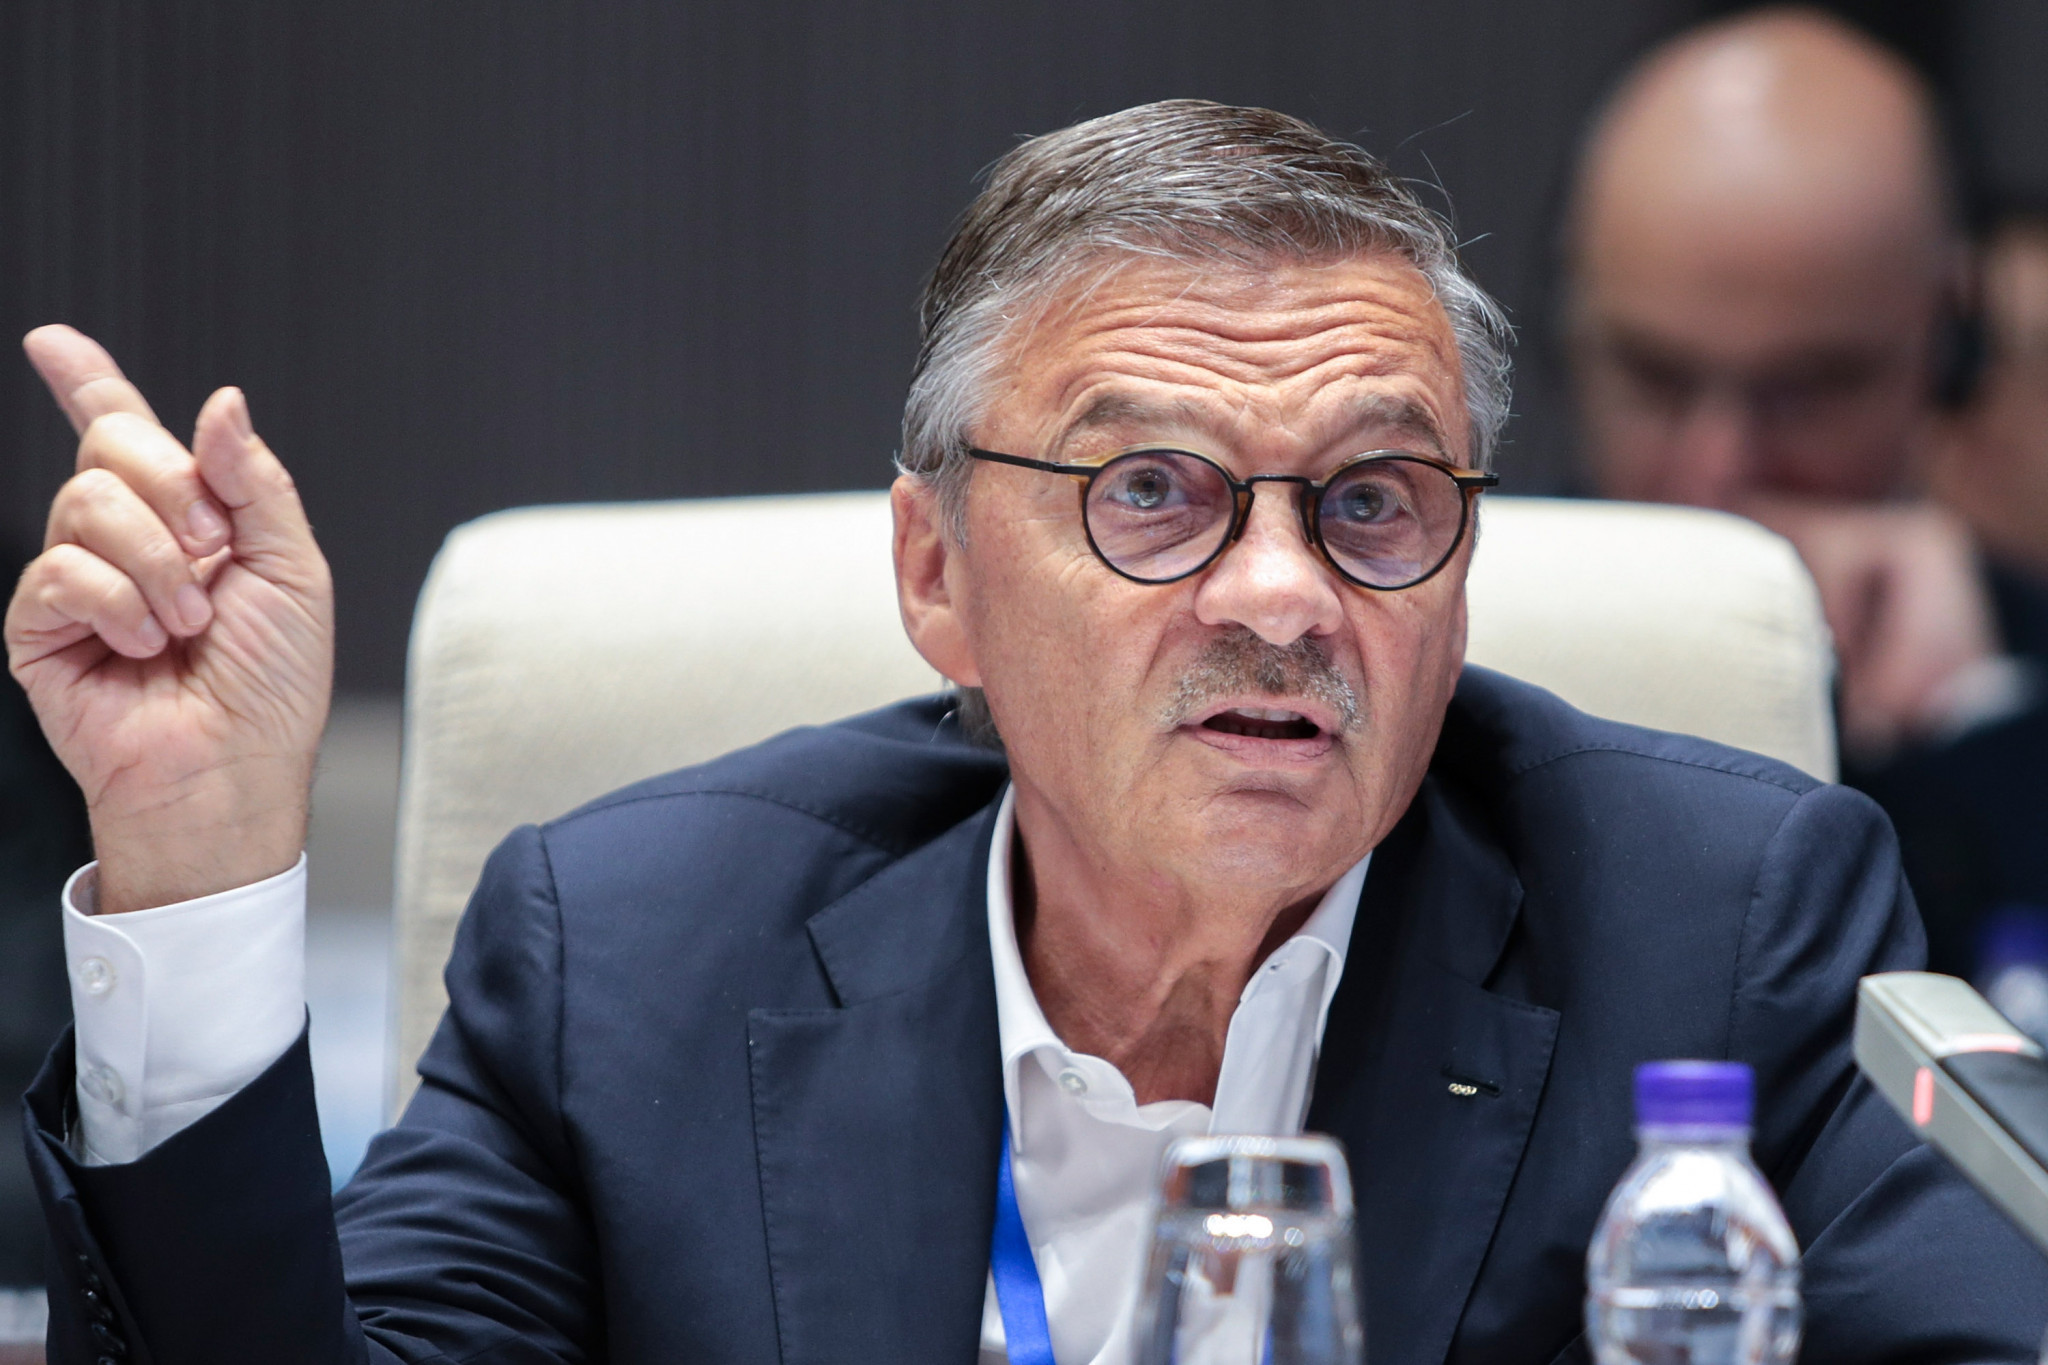 IIHF President René Fasel is reportedly set to hold talks over moving the 2021 World Championship to Moscow ©Getty Images